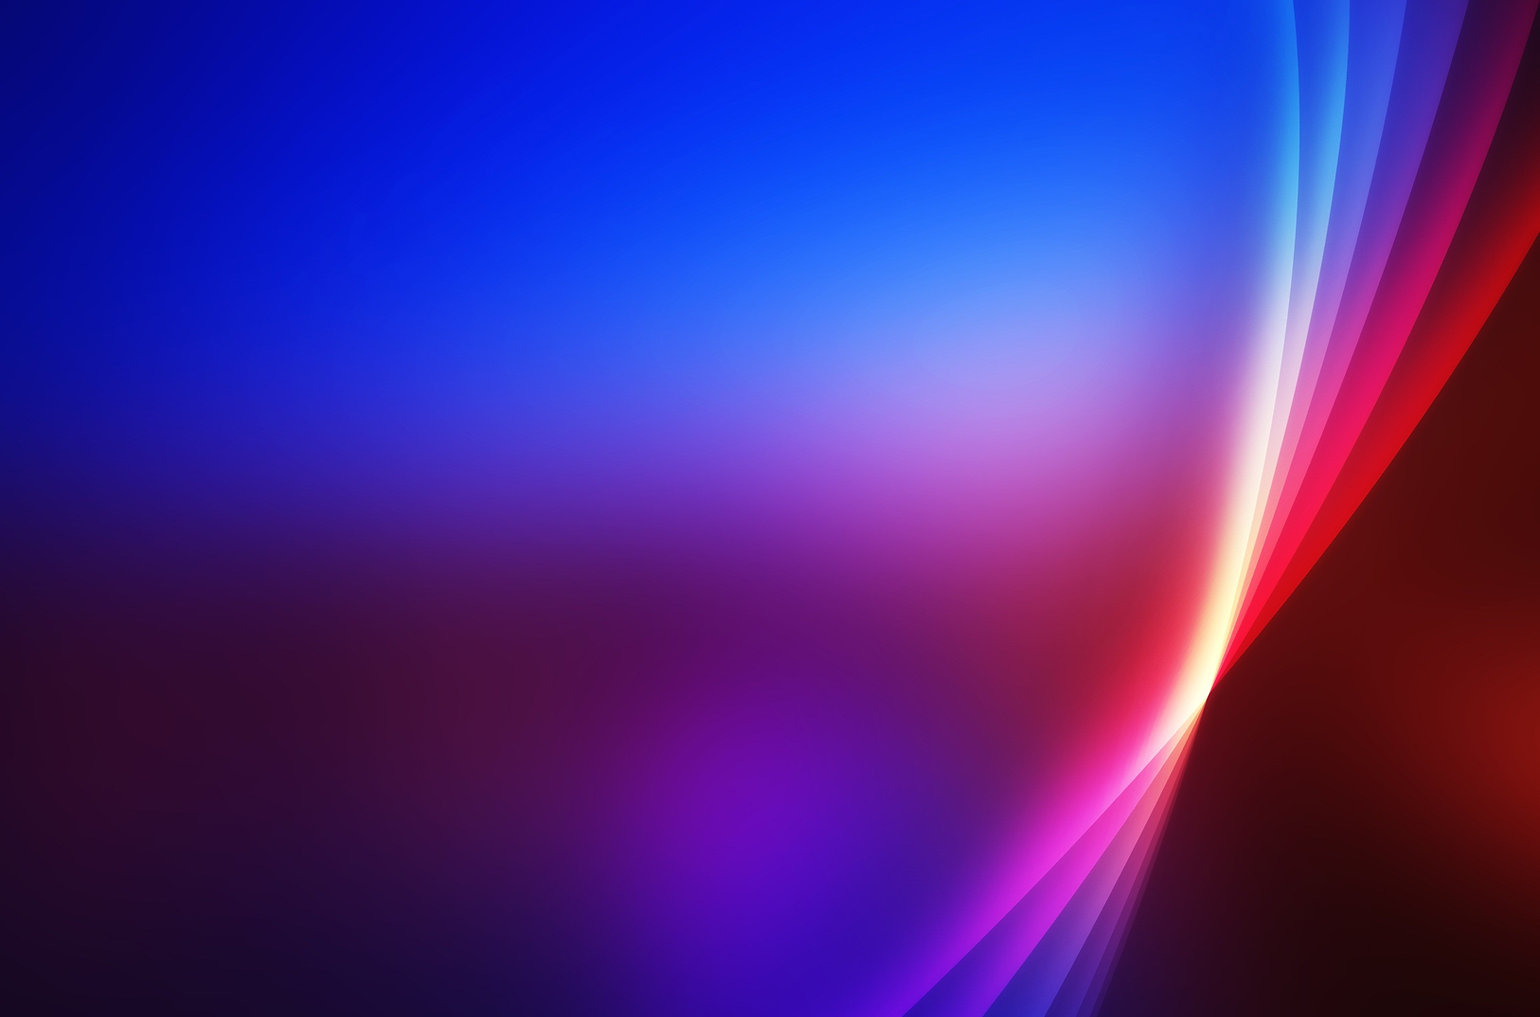 light-abstract-simple-background-iv.jpg